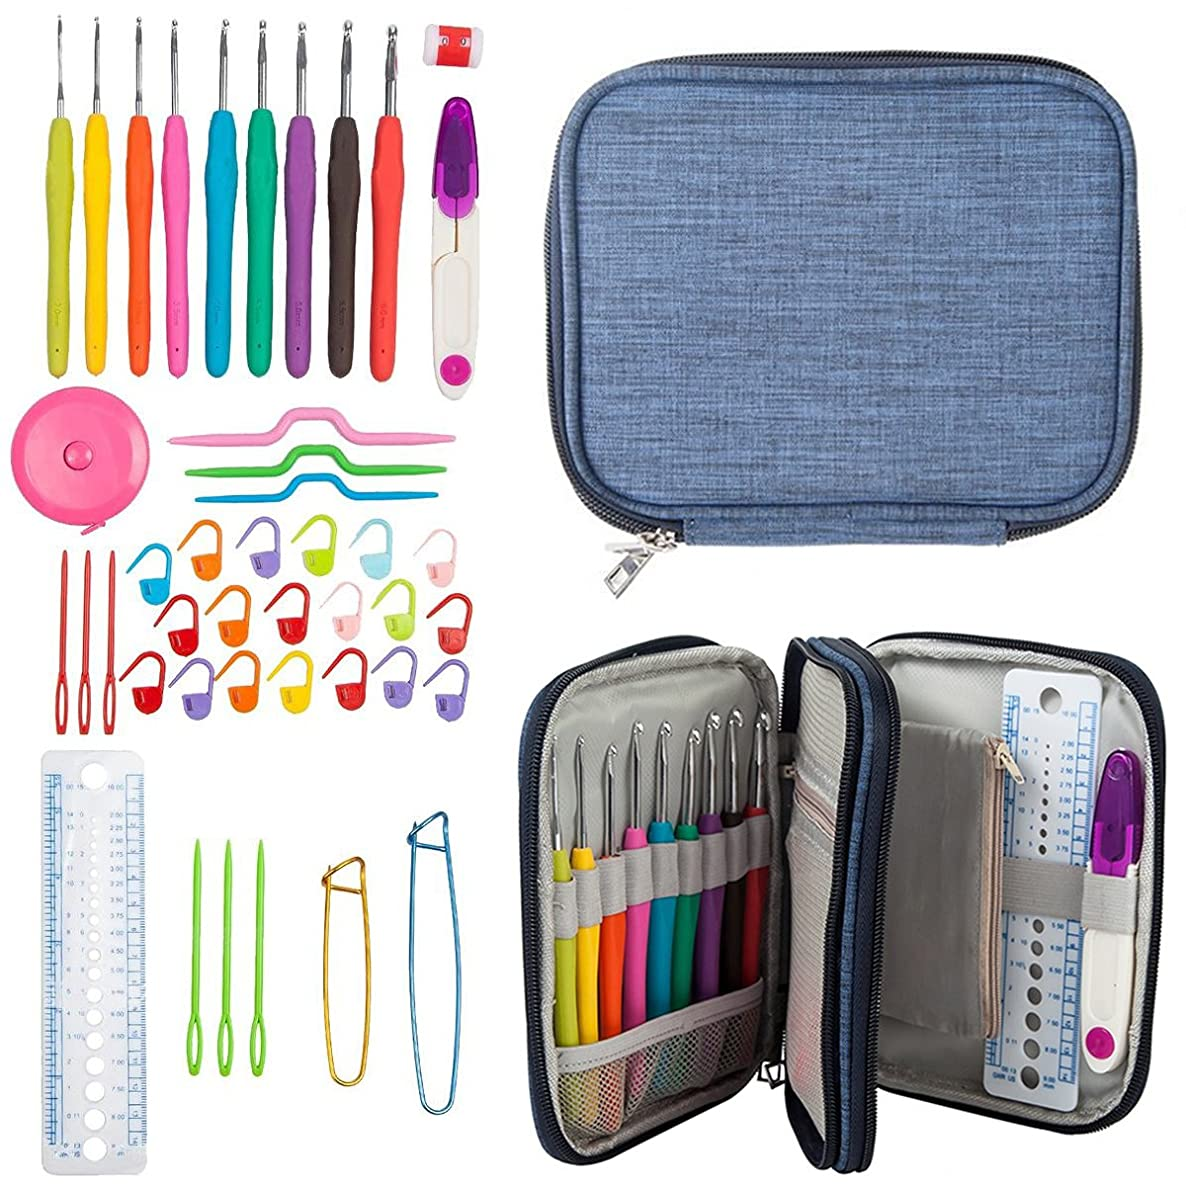 45 Pcs Crochet Hooks Stitches Knitting Needle Kit PERTTY Sewing Tools For DIY Knitting Needle Kit with Zipper Case Organizer